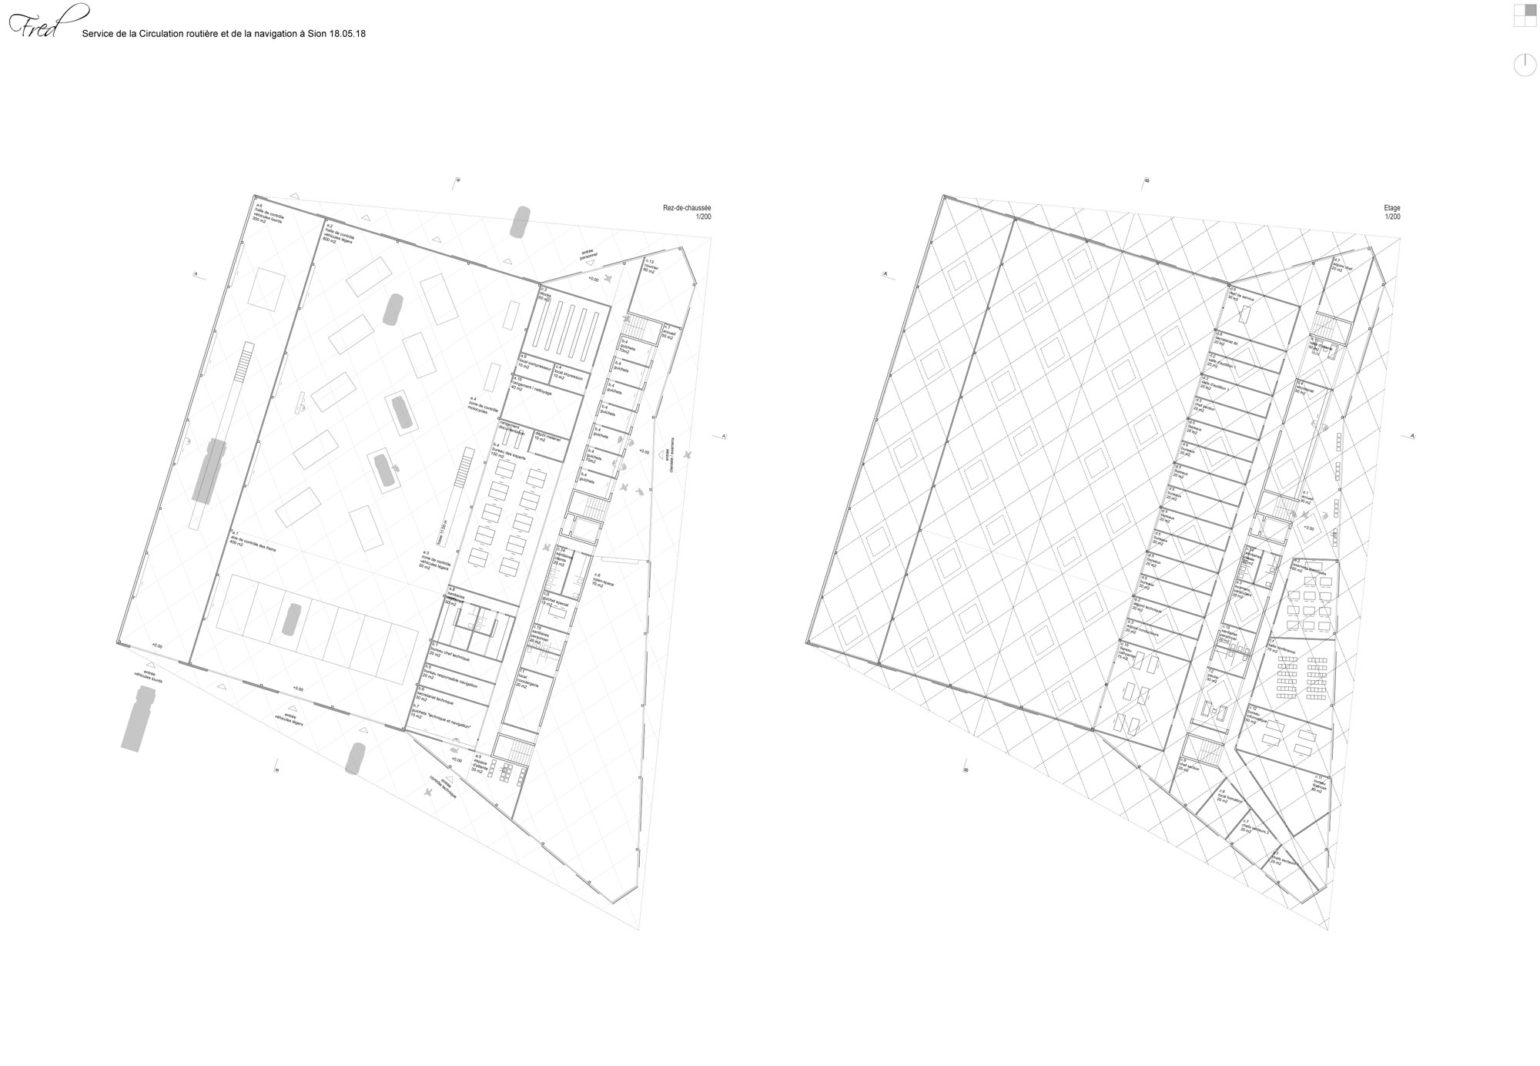 concours_service_circulation_sion_meyer_architecture_sion_04